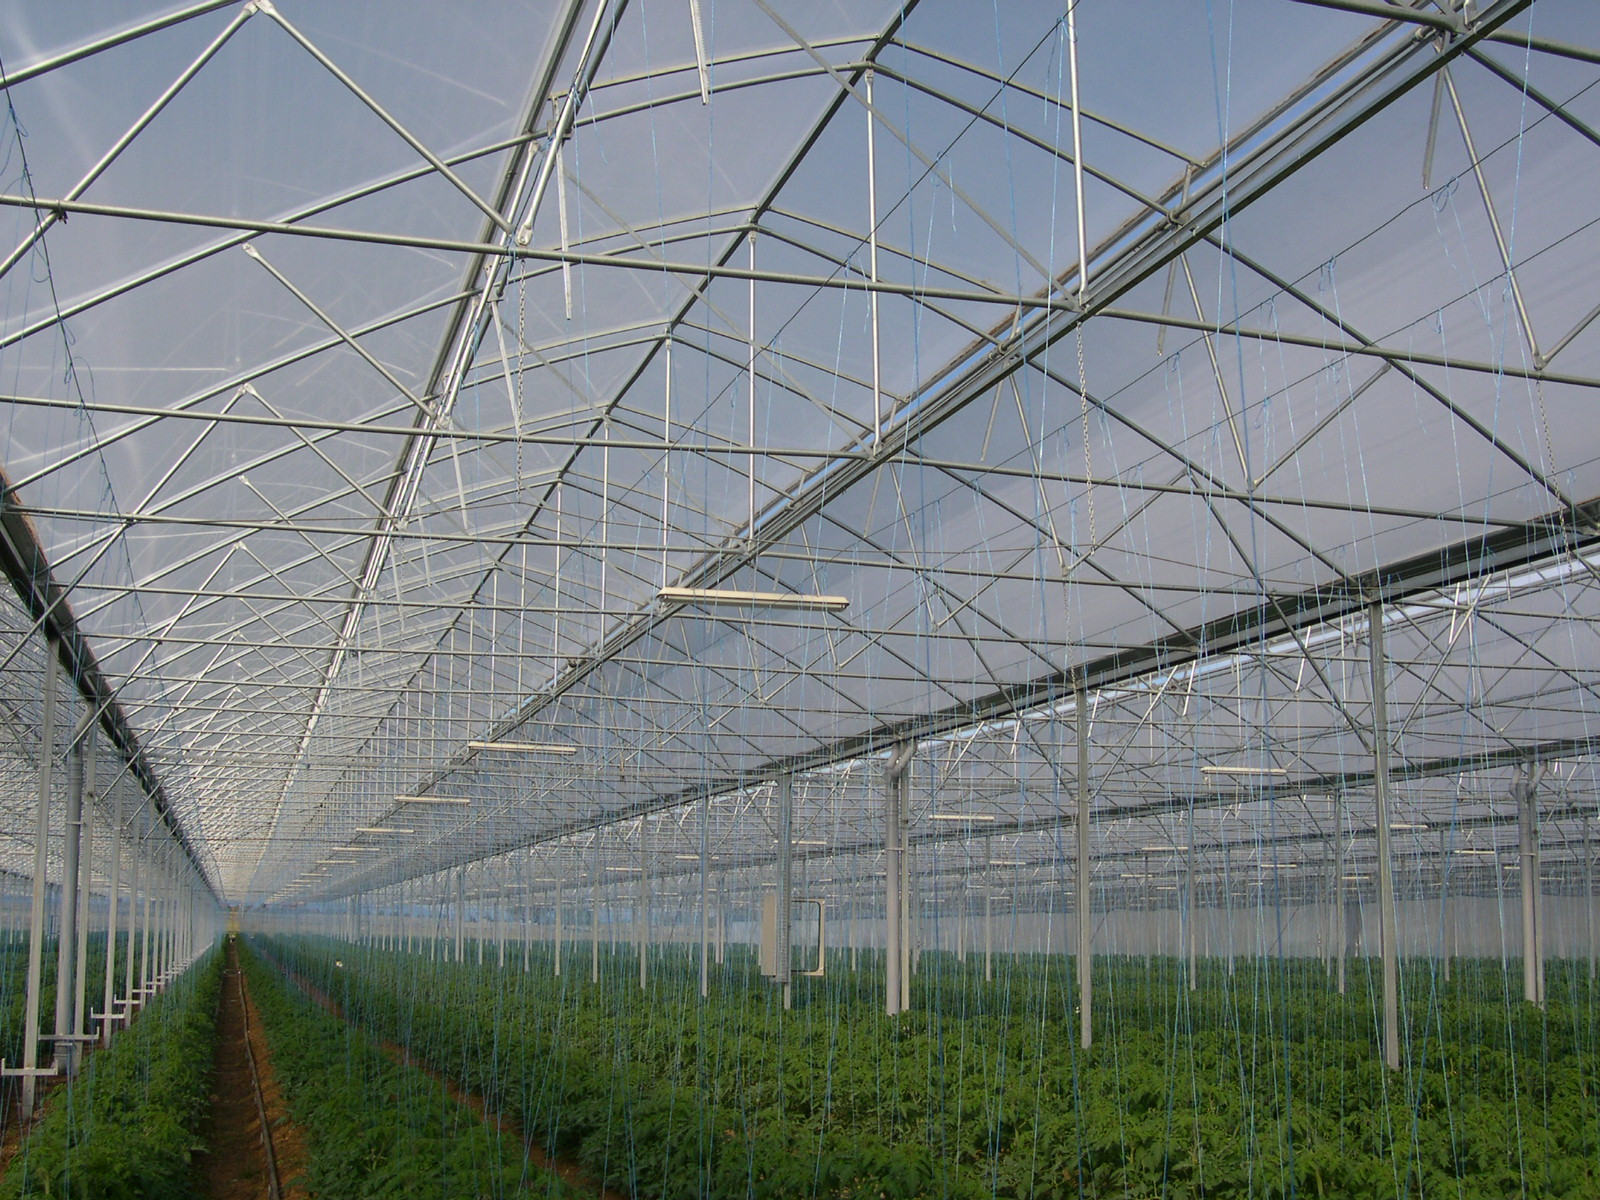 KRITIFIL® greenhouse filmsAnti-mist effect